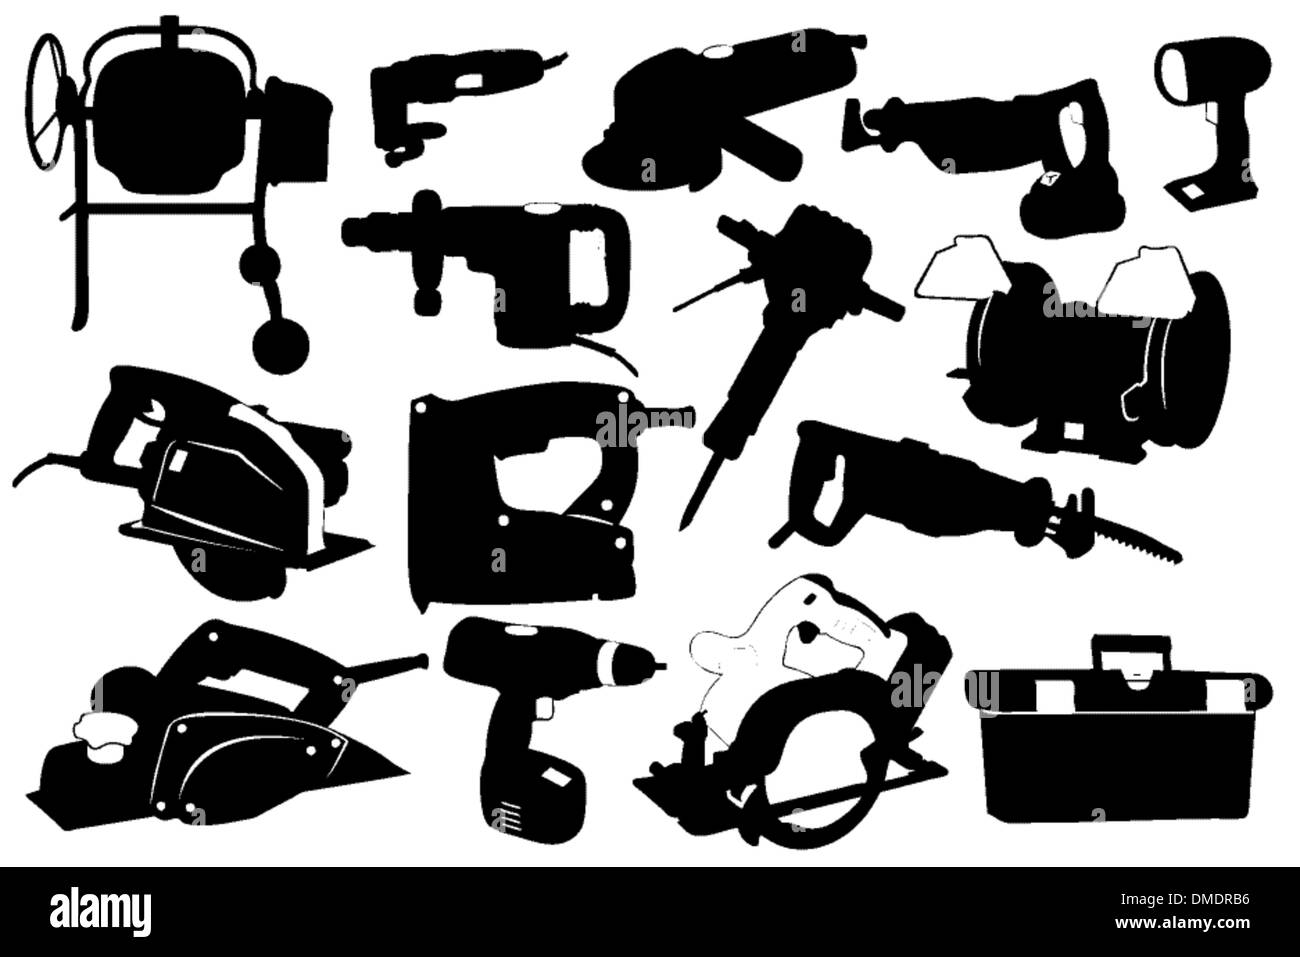 Electric tools - Stock Vector